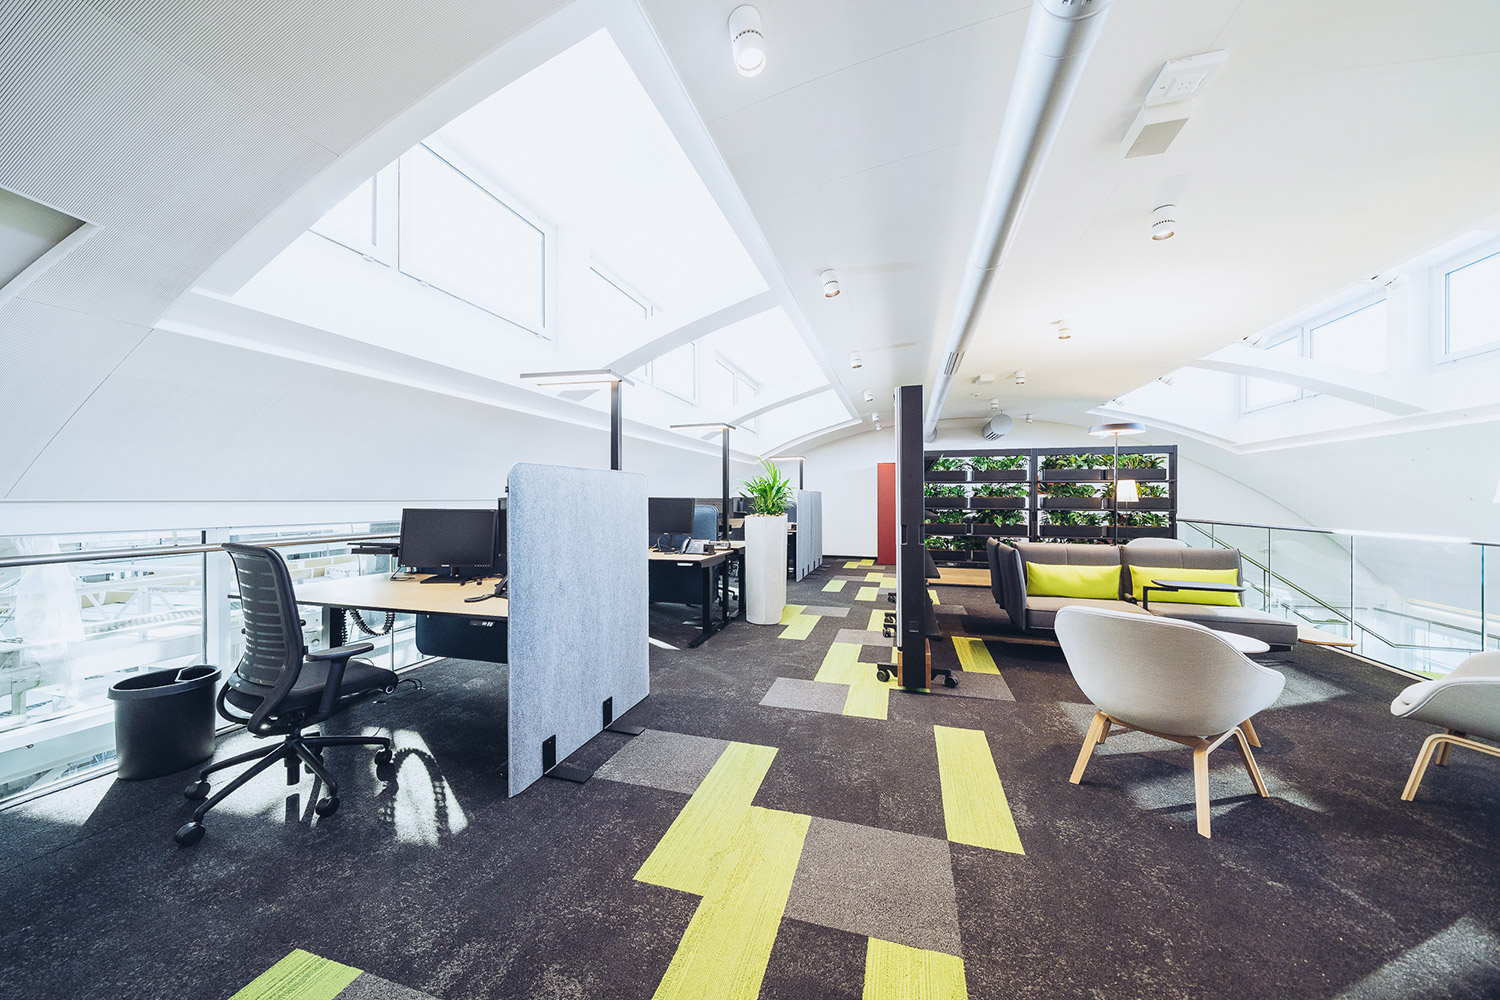 SWICA, one of Switzerland's leading healthcare and insurance organizations, retained WSDG to create an efficient and acoustically pleasant open space environment. Back View.